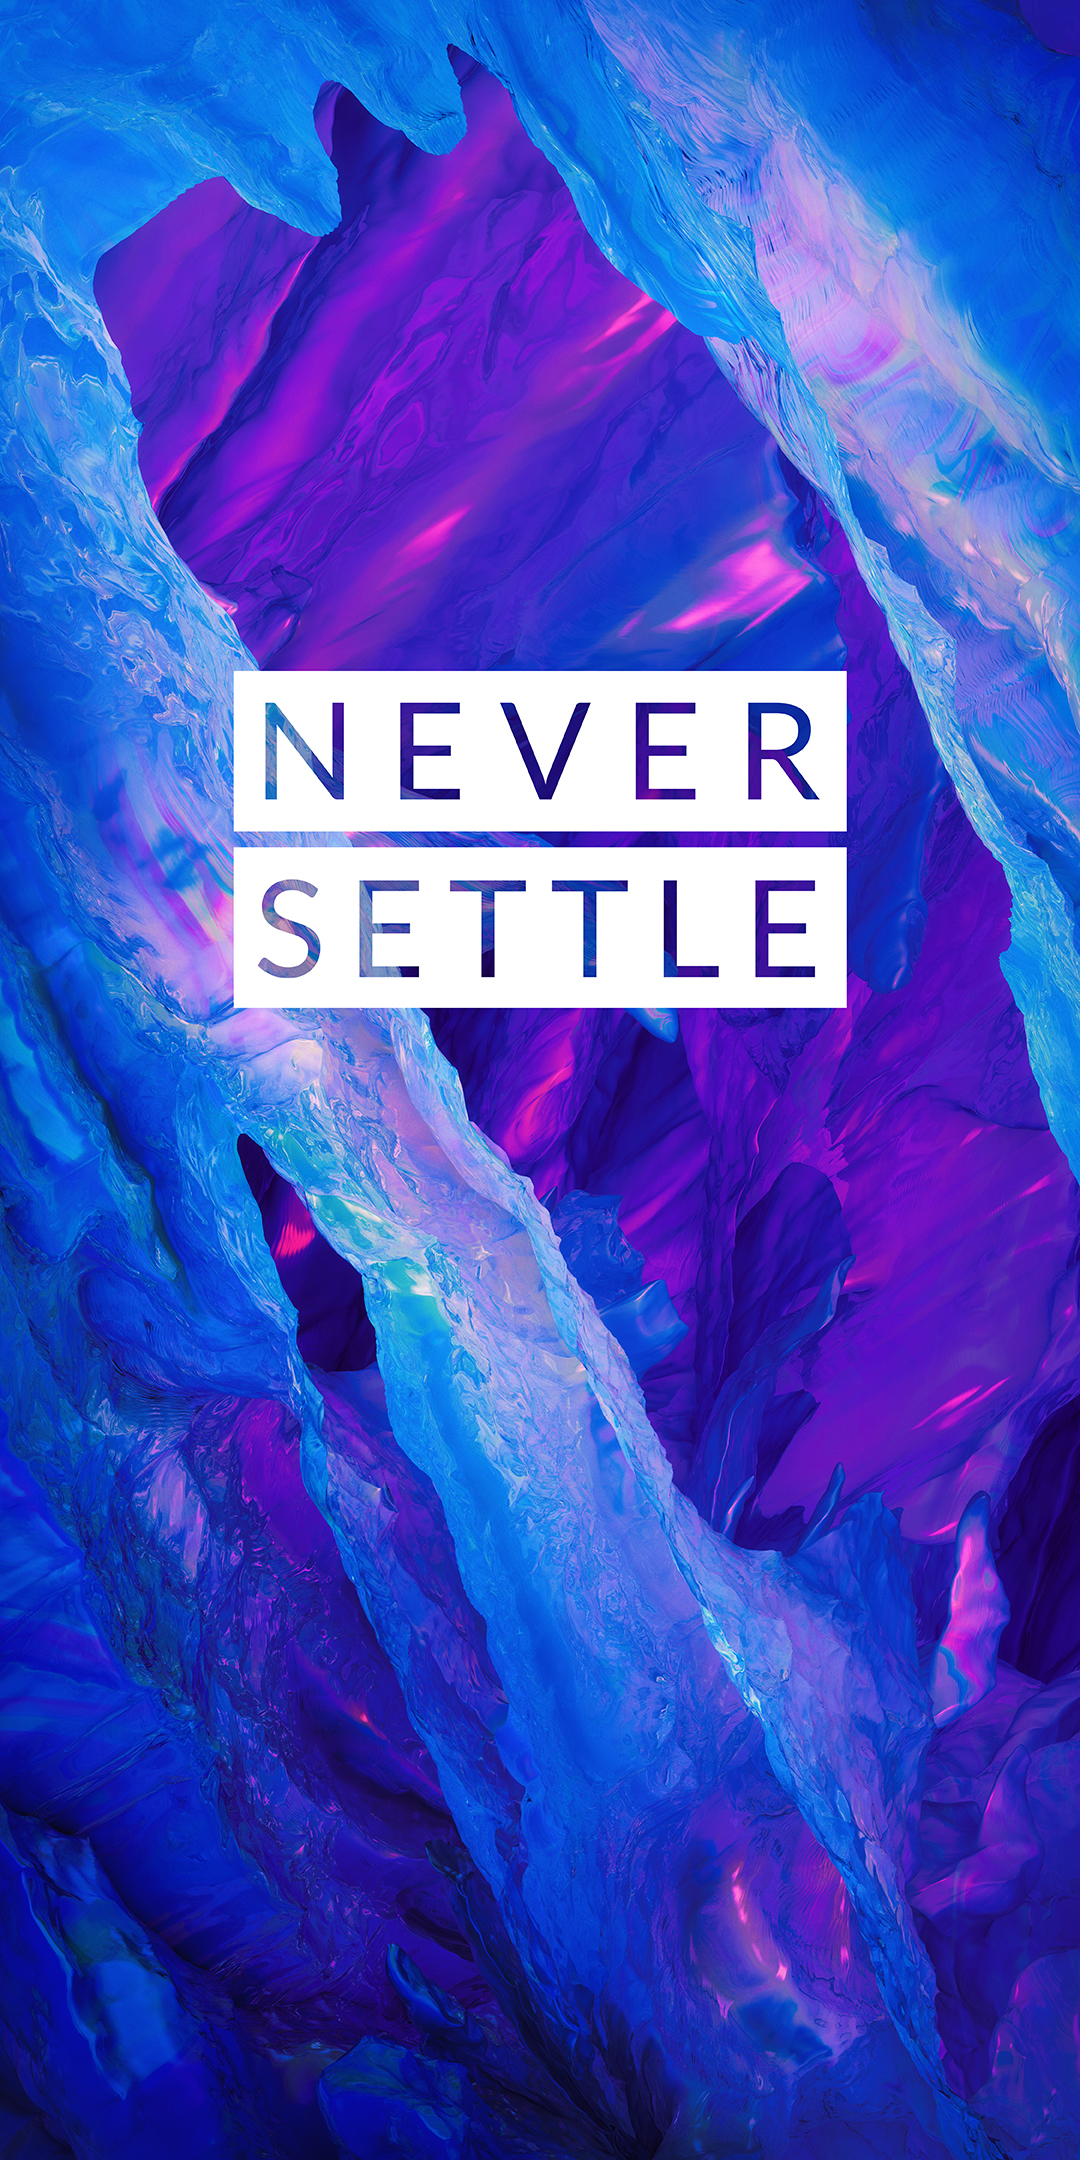 View Never Settle 4K Wallpapers Free Download PNG